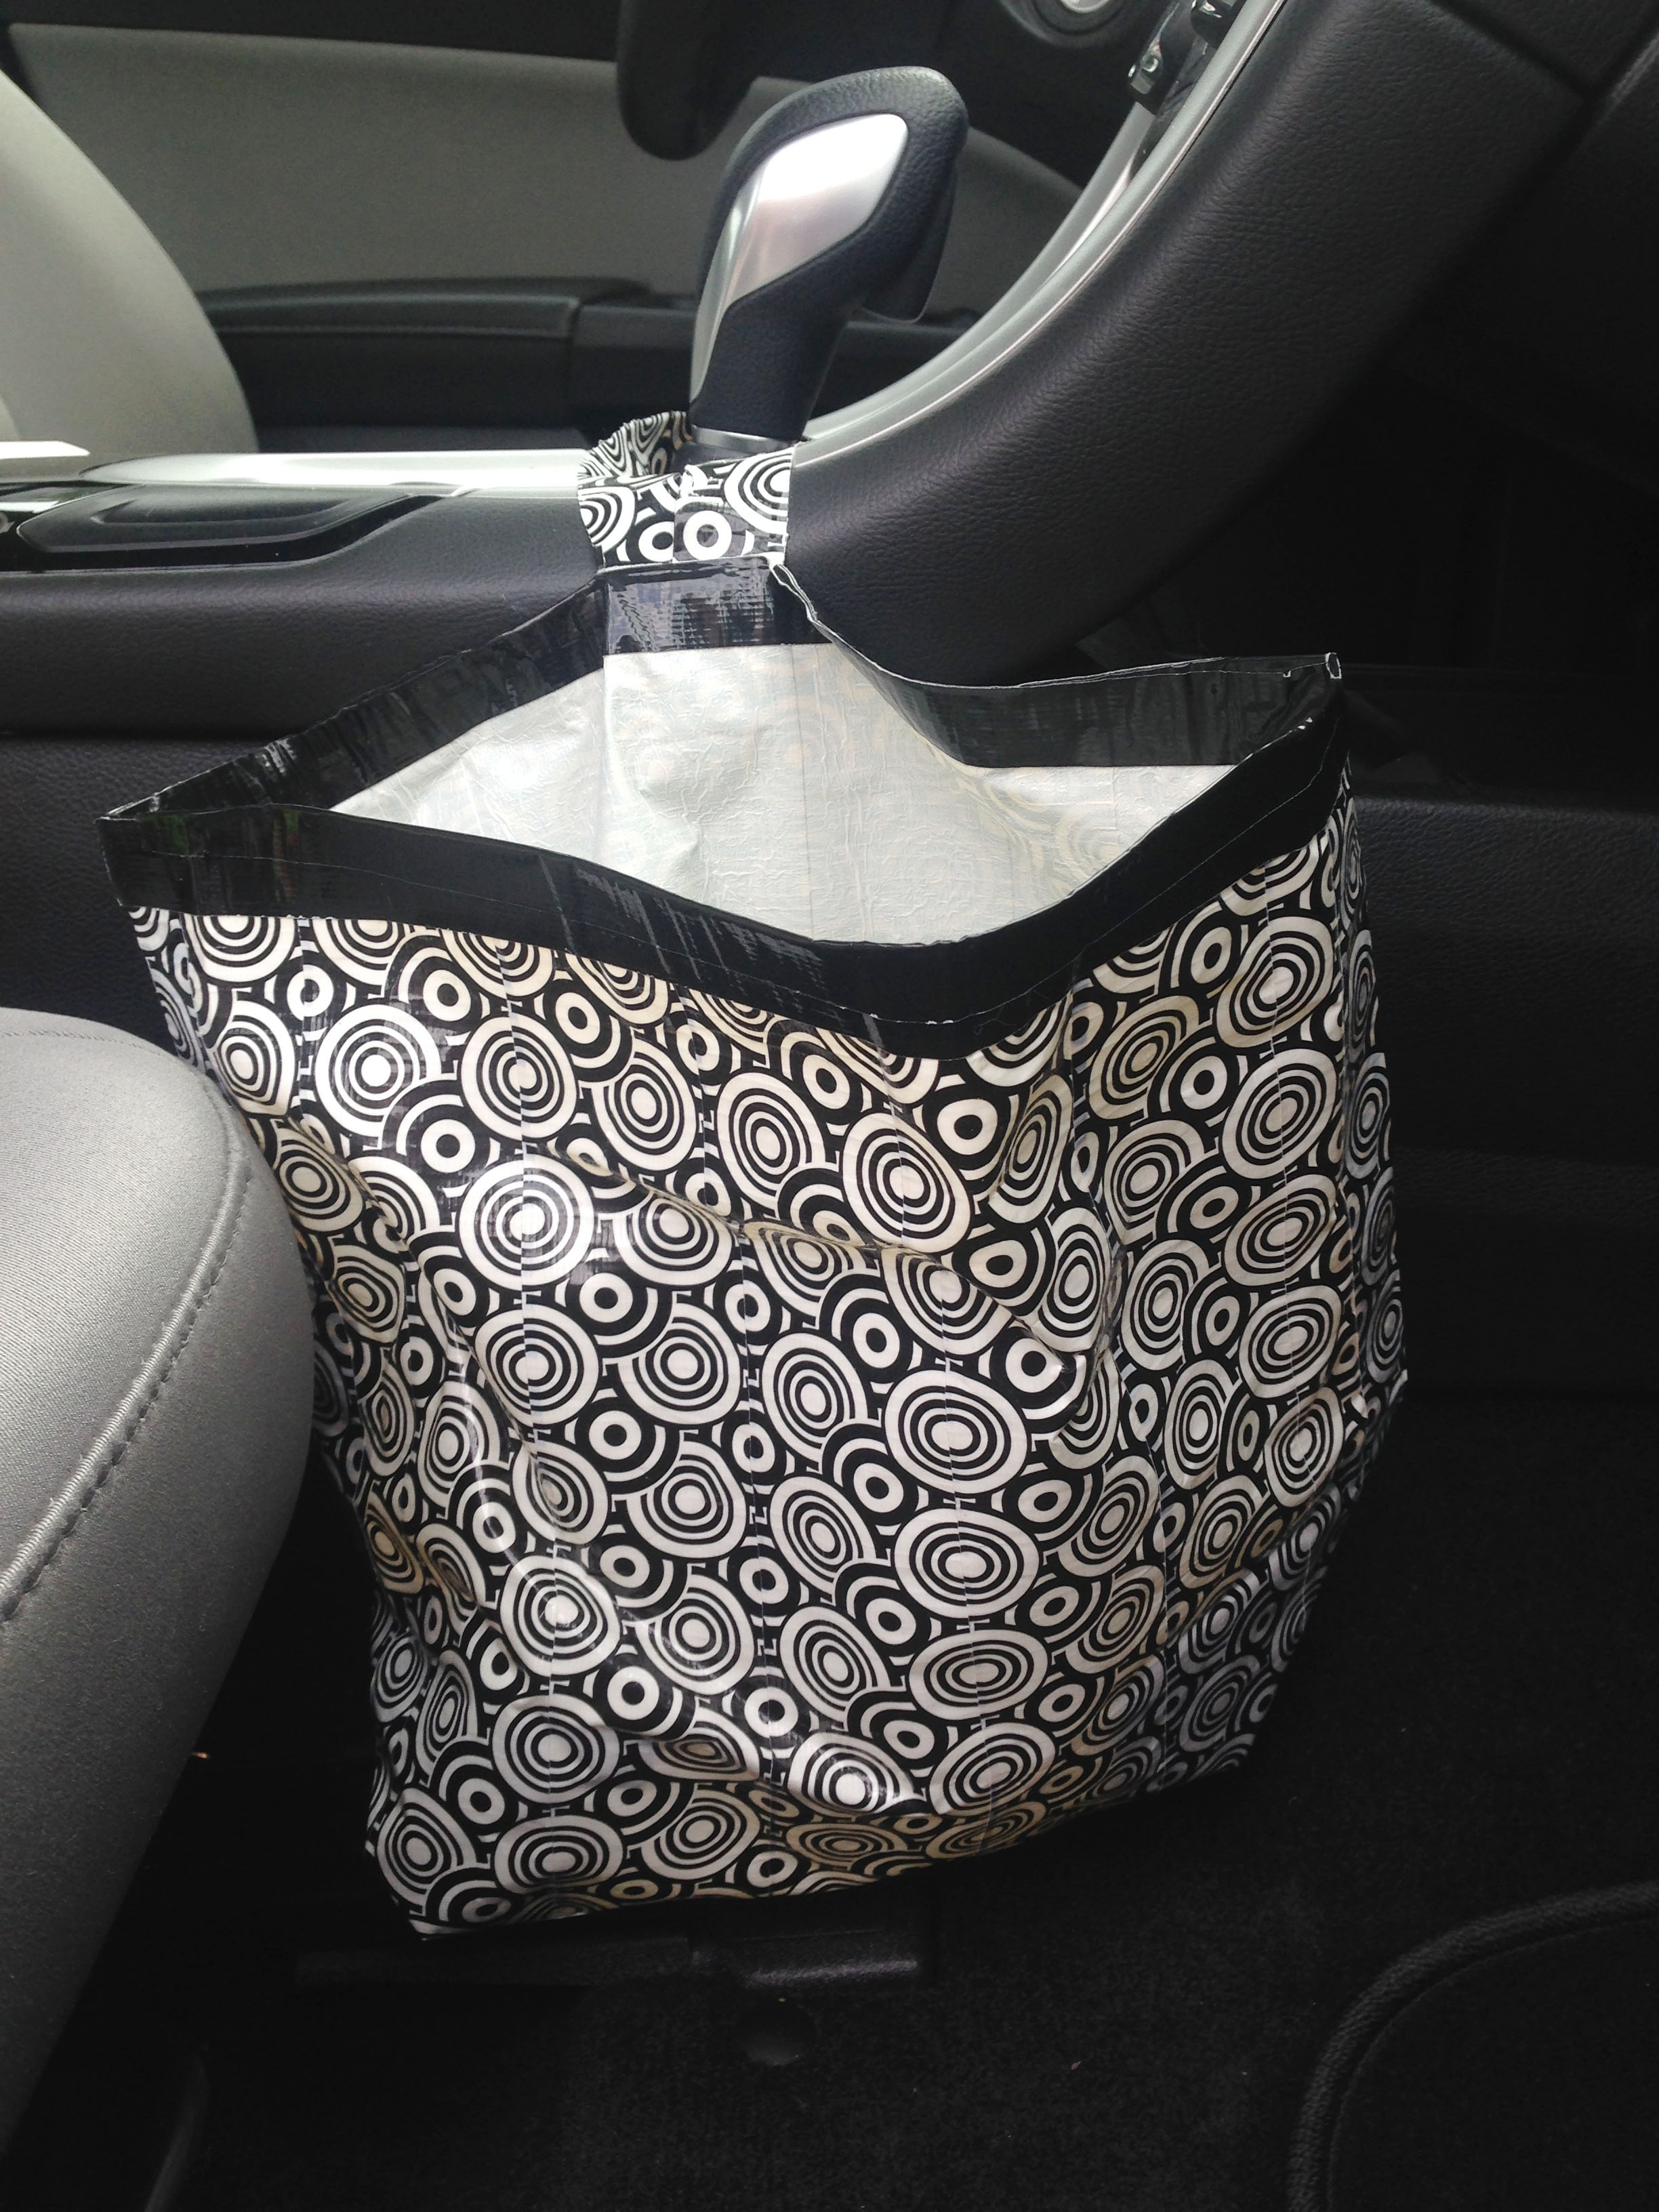 Duct Tape Craft Diy Car Garbage Bag Make Something Mondays